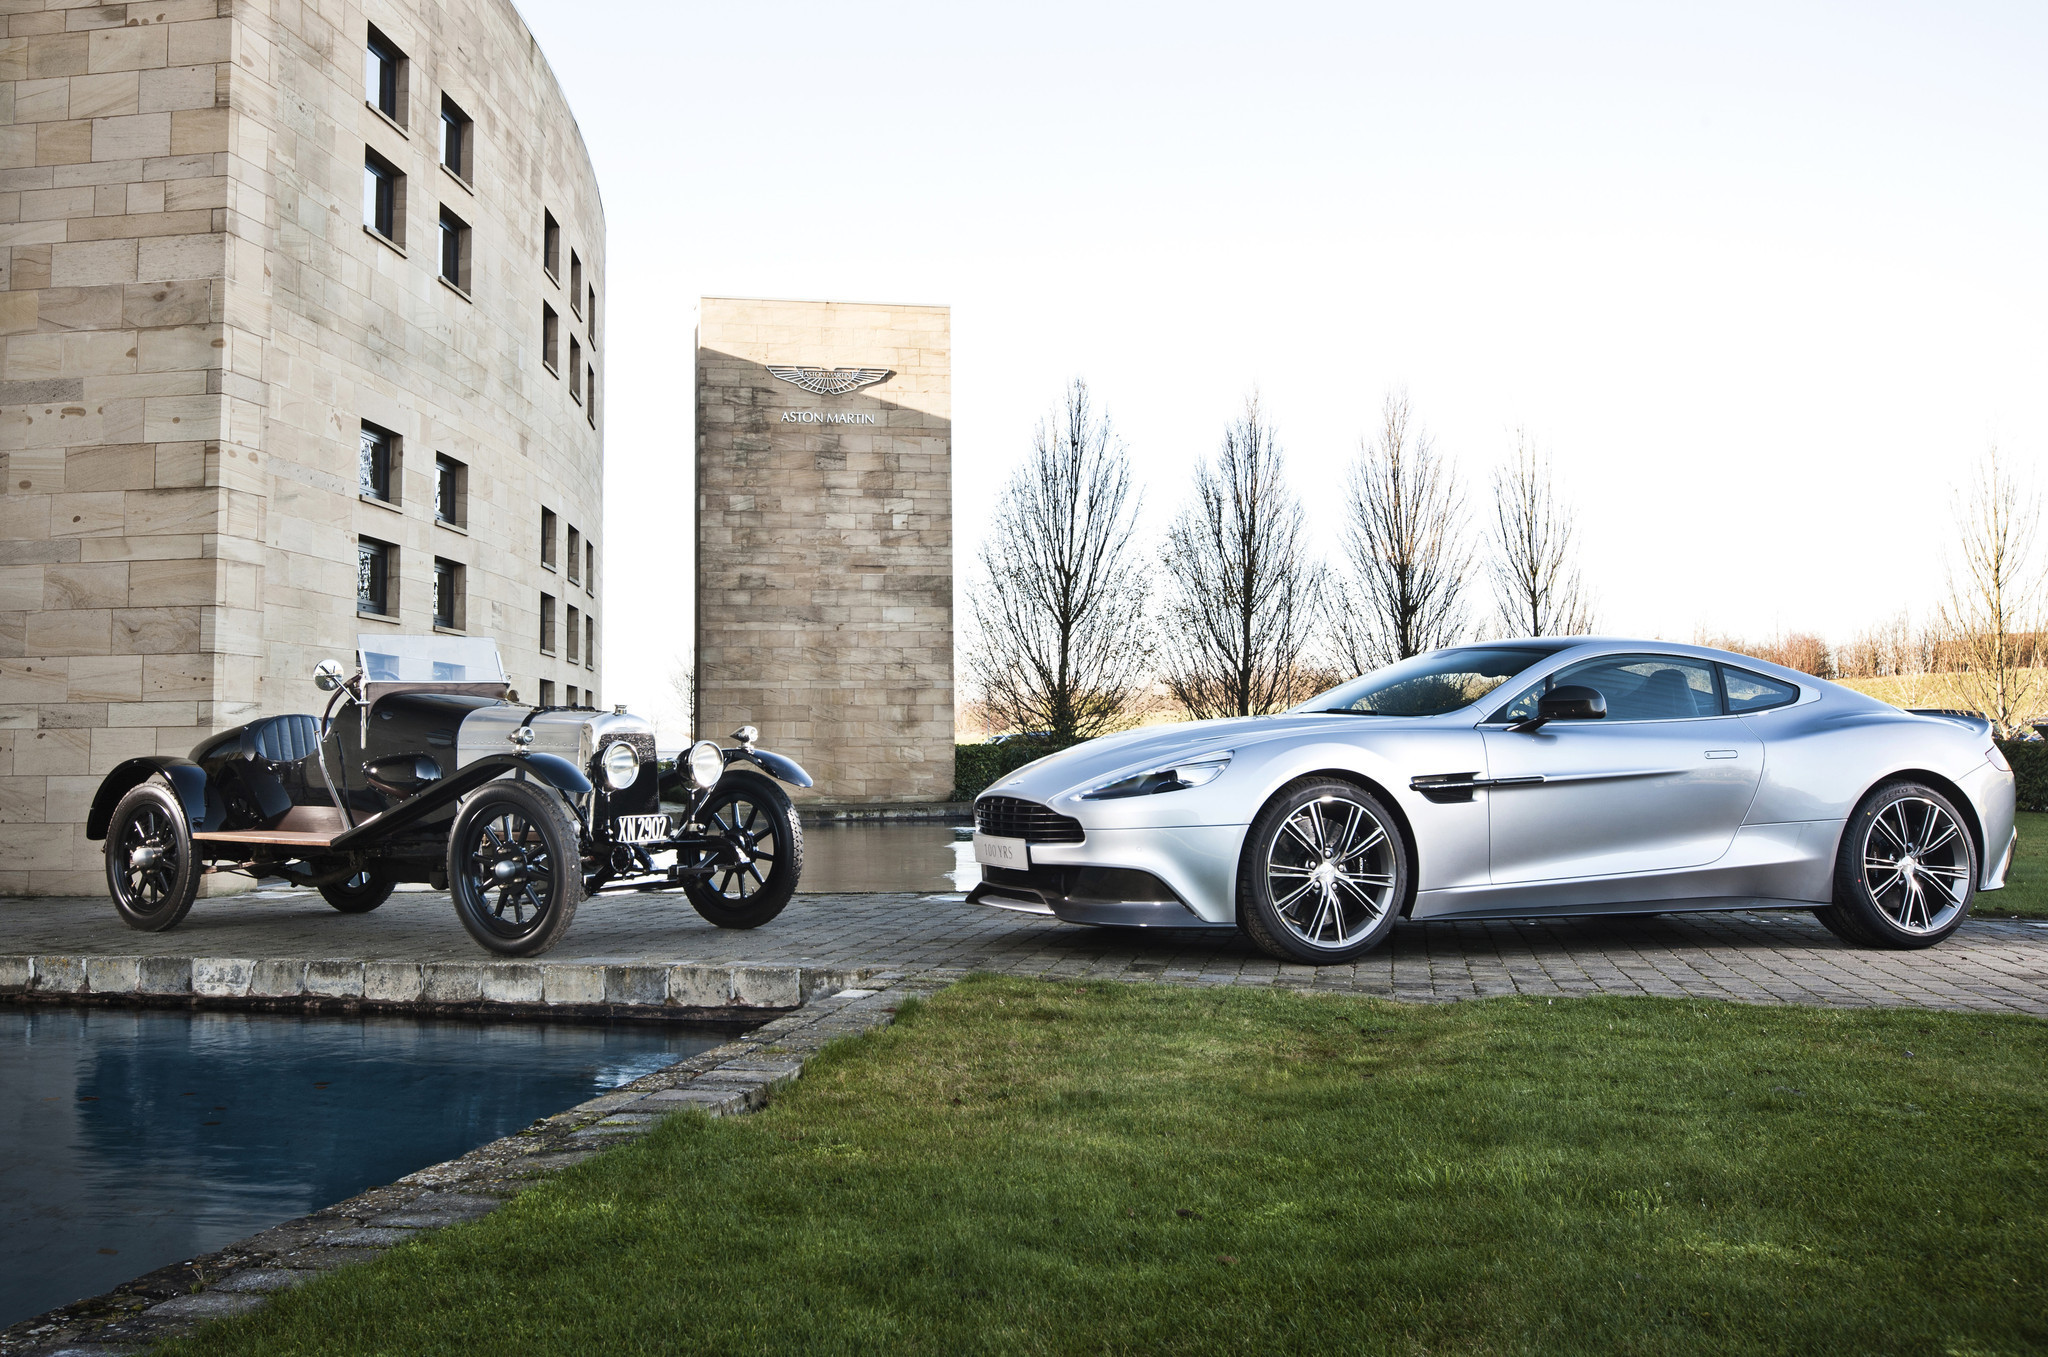 The Aston Martin Lineup From The Start Chicago Tribune - Aston martin lineup